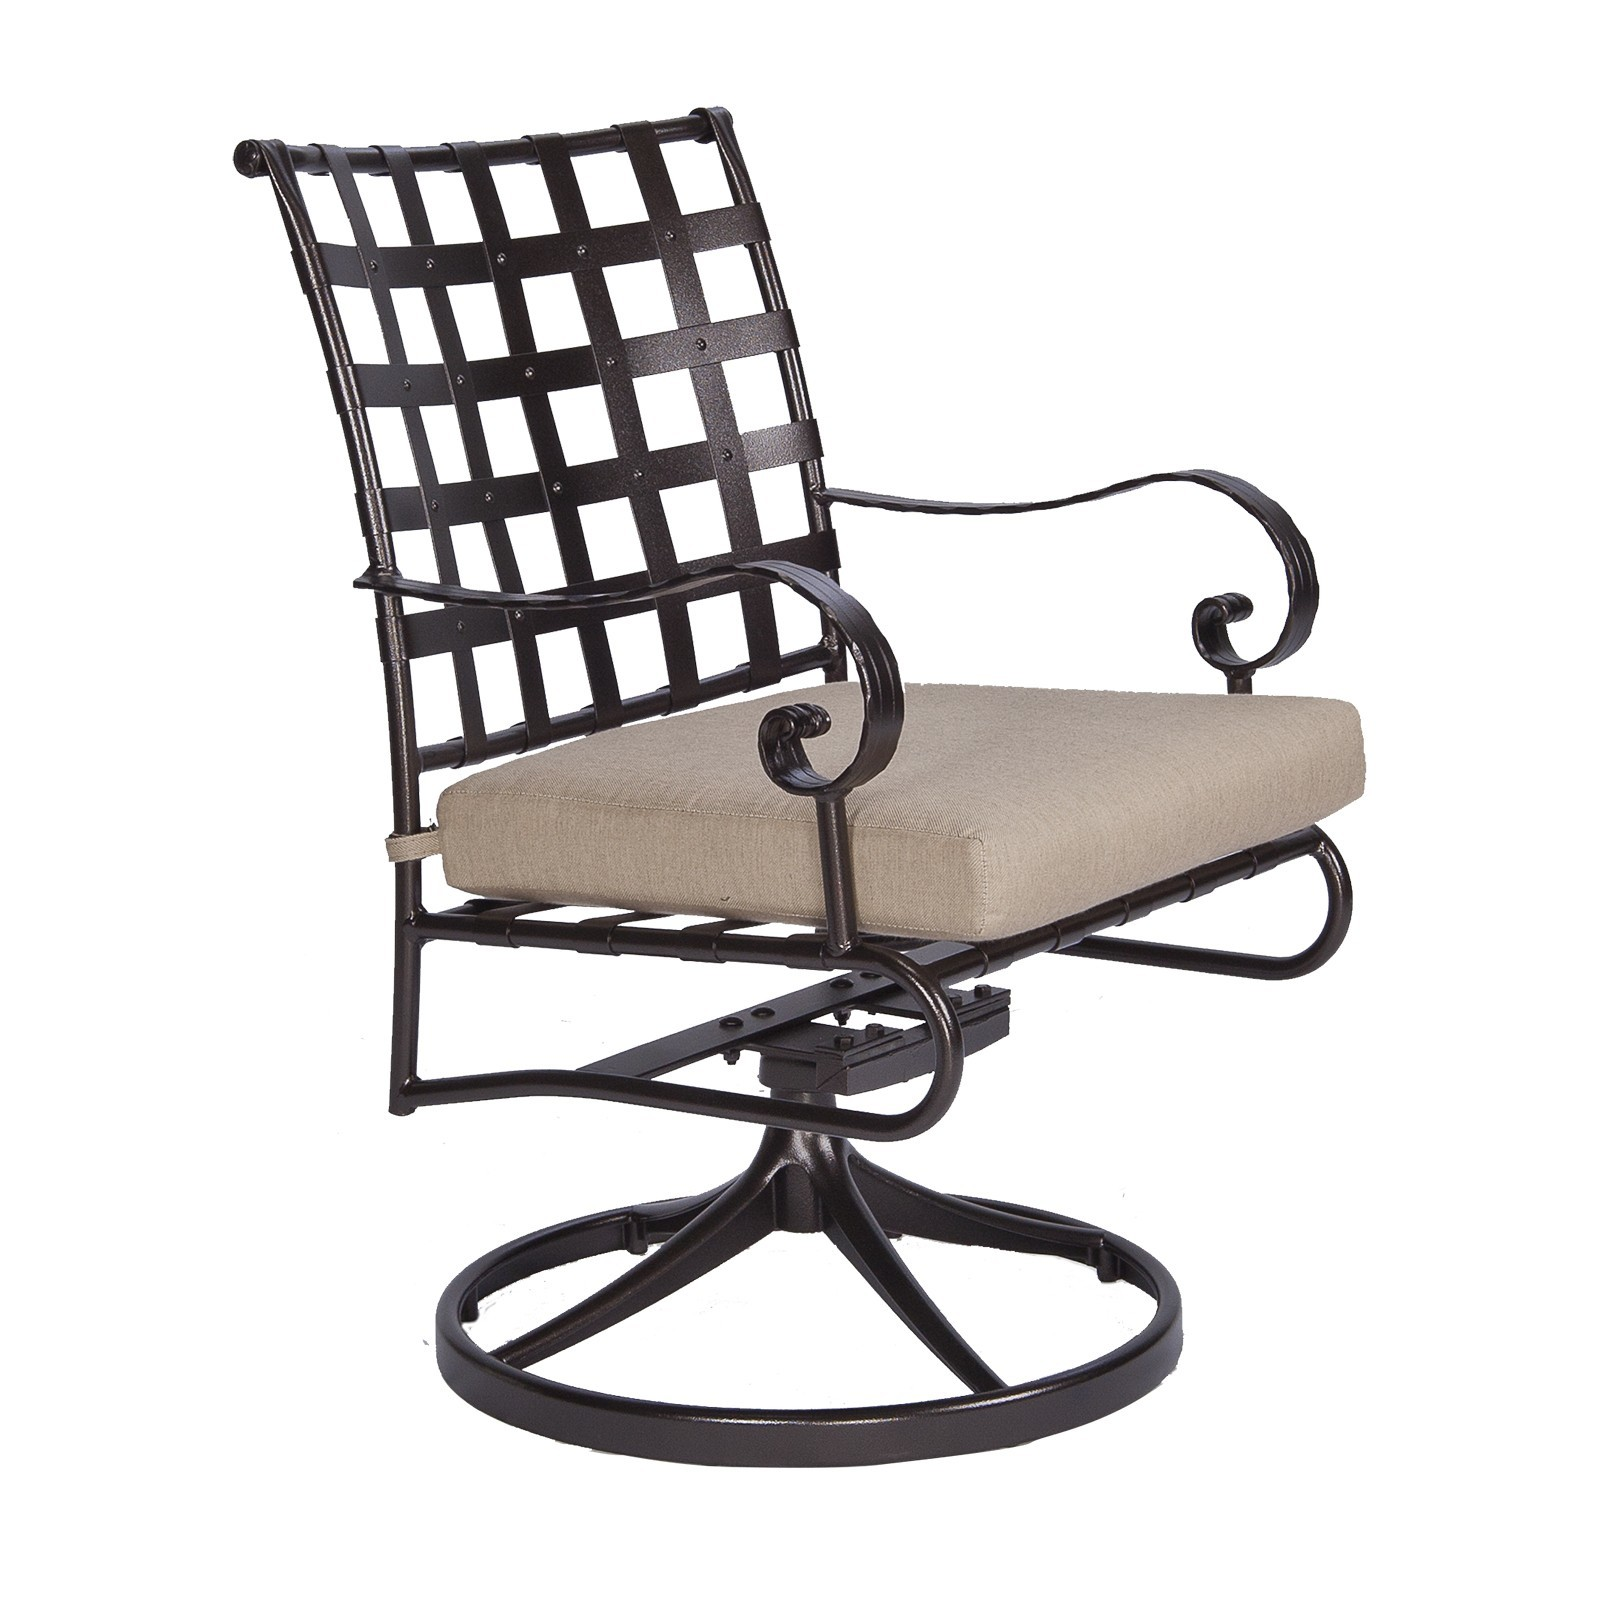 Classico-W Swivel Rocker Dining Arm Chair